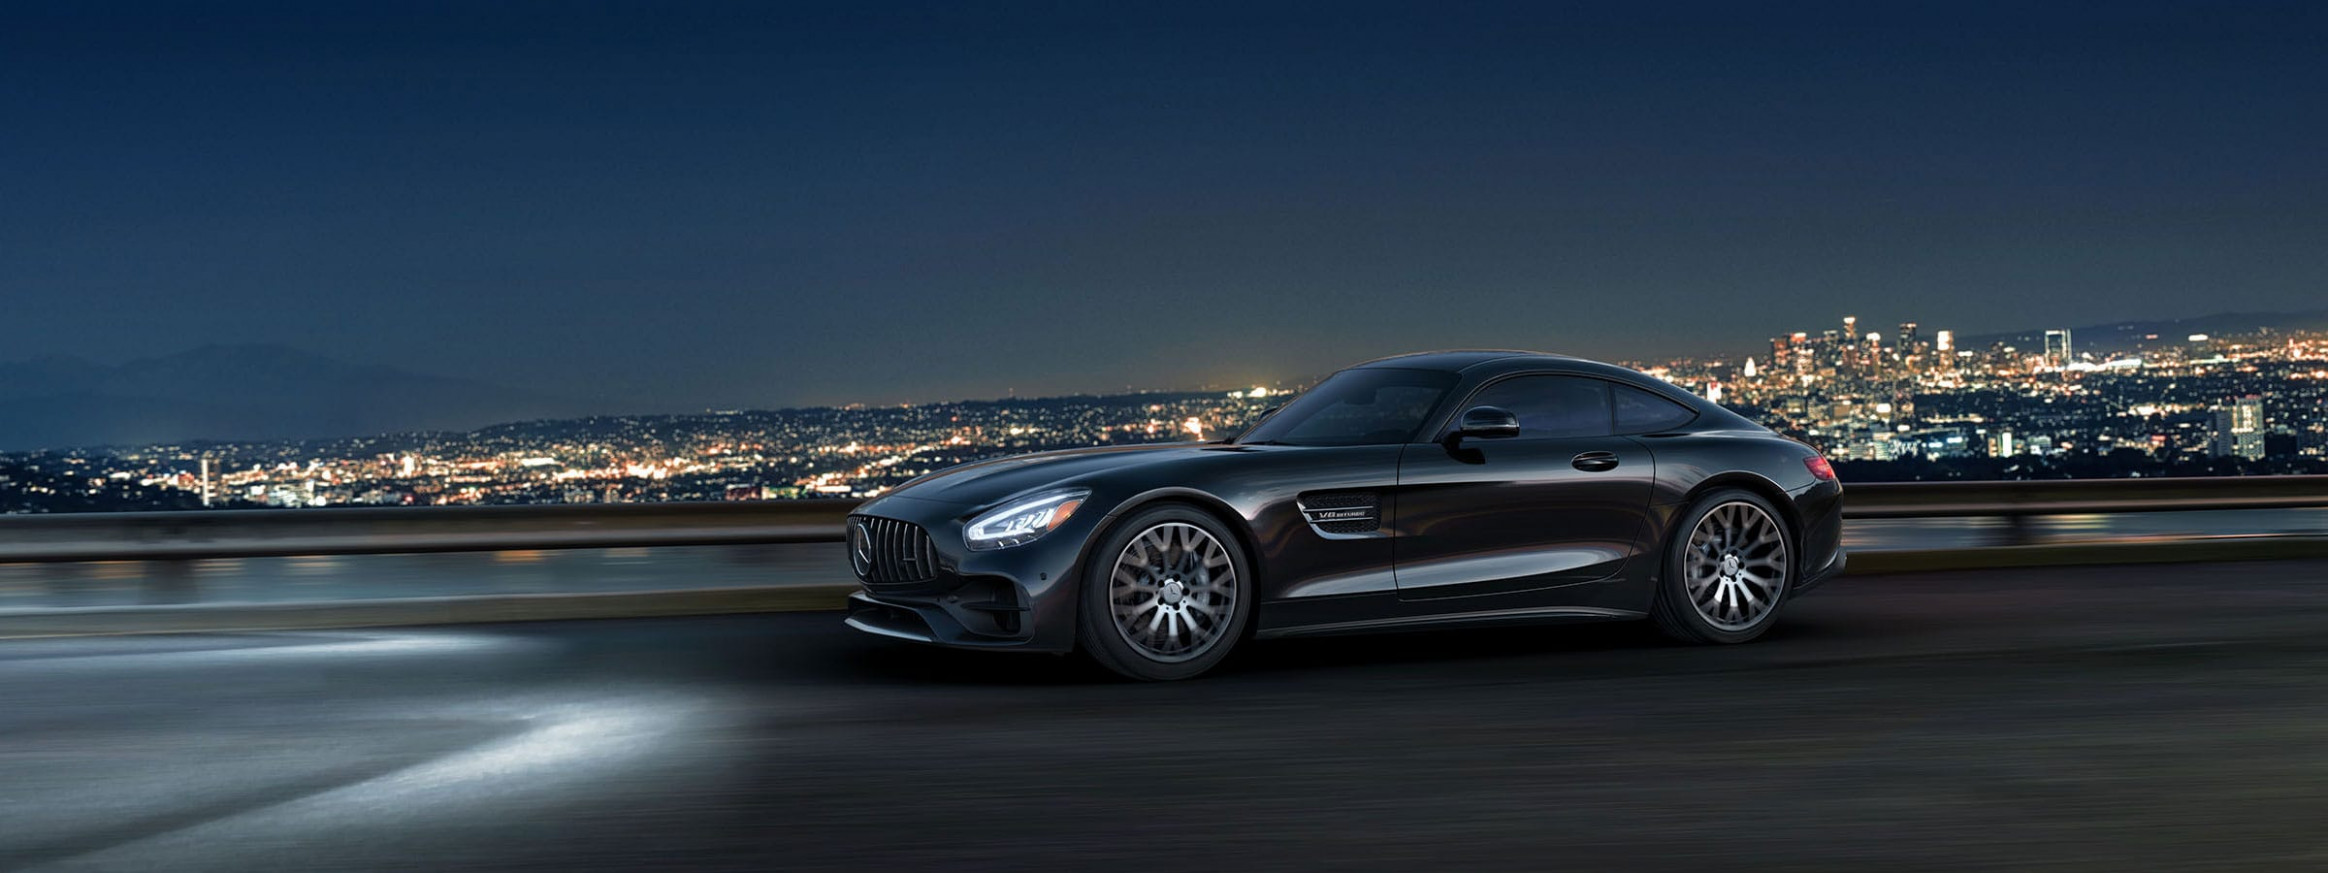 8 Mercedes-AMG High Performance GT C Coupe Sports Car - 2020 mercedes amg gt price